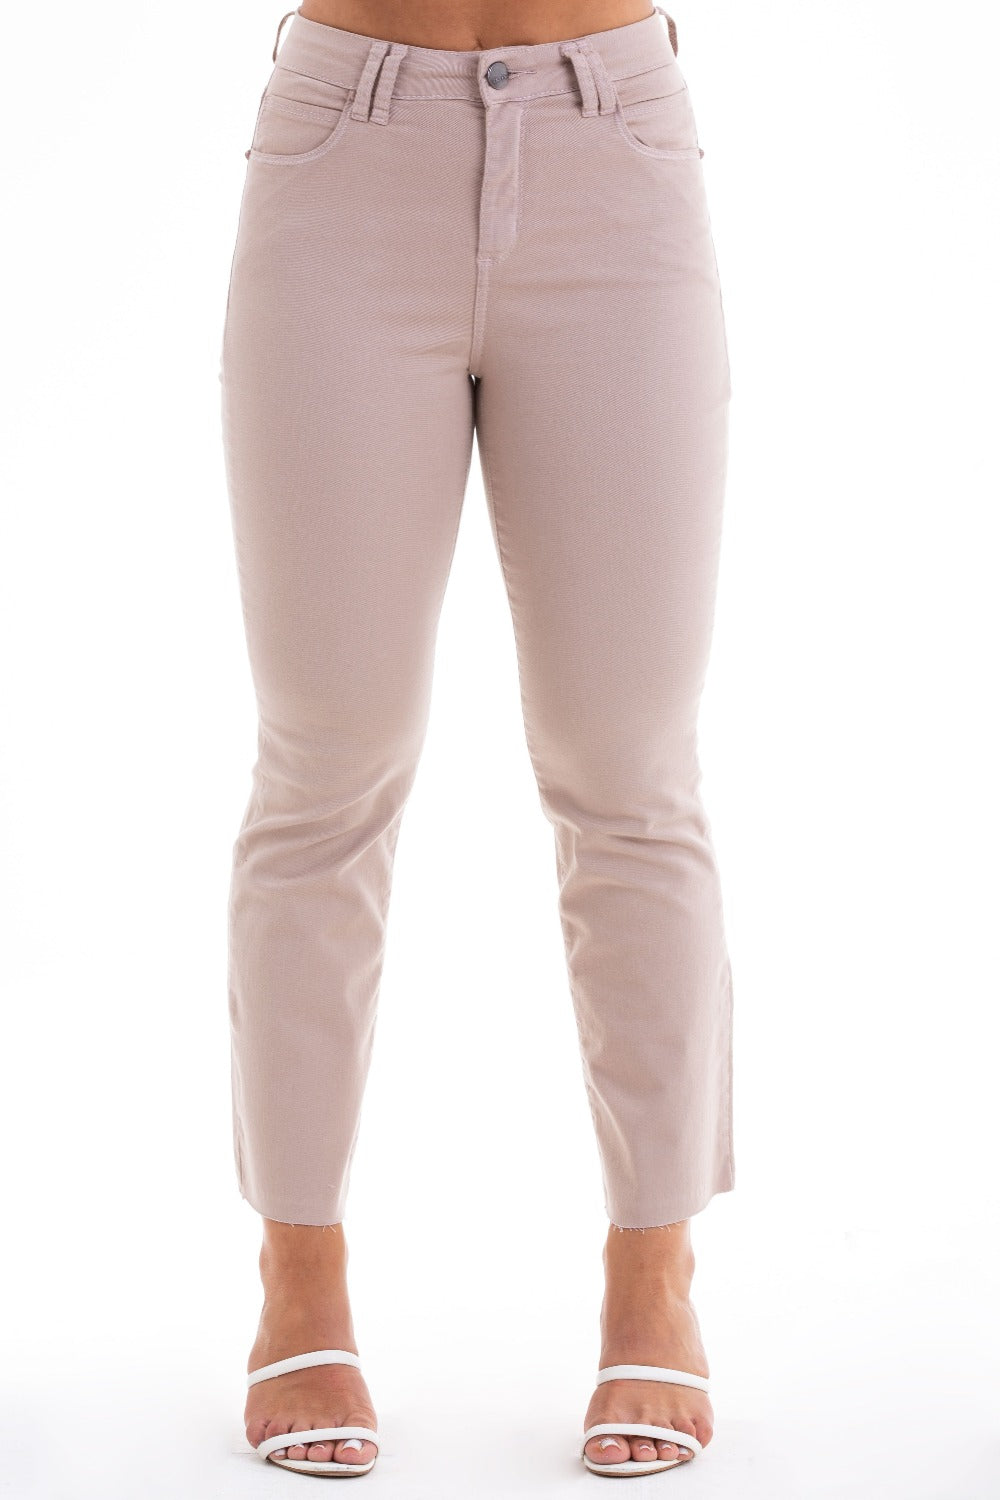 CALÇA ITS&CO BASIC NELY STRAIGHT LEG